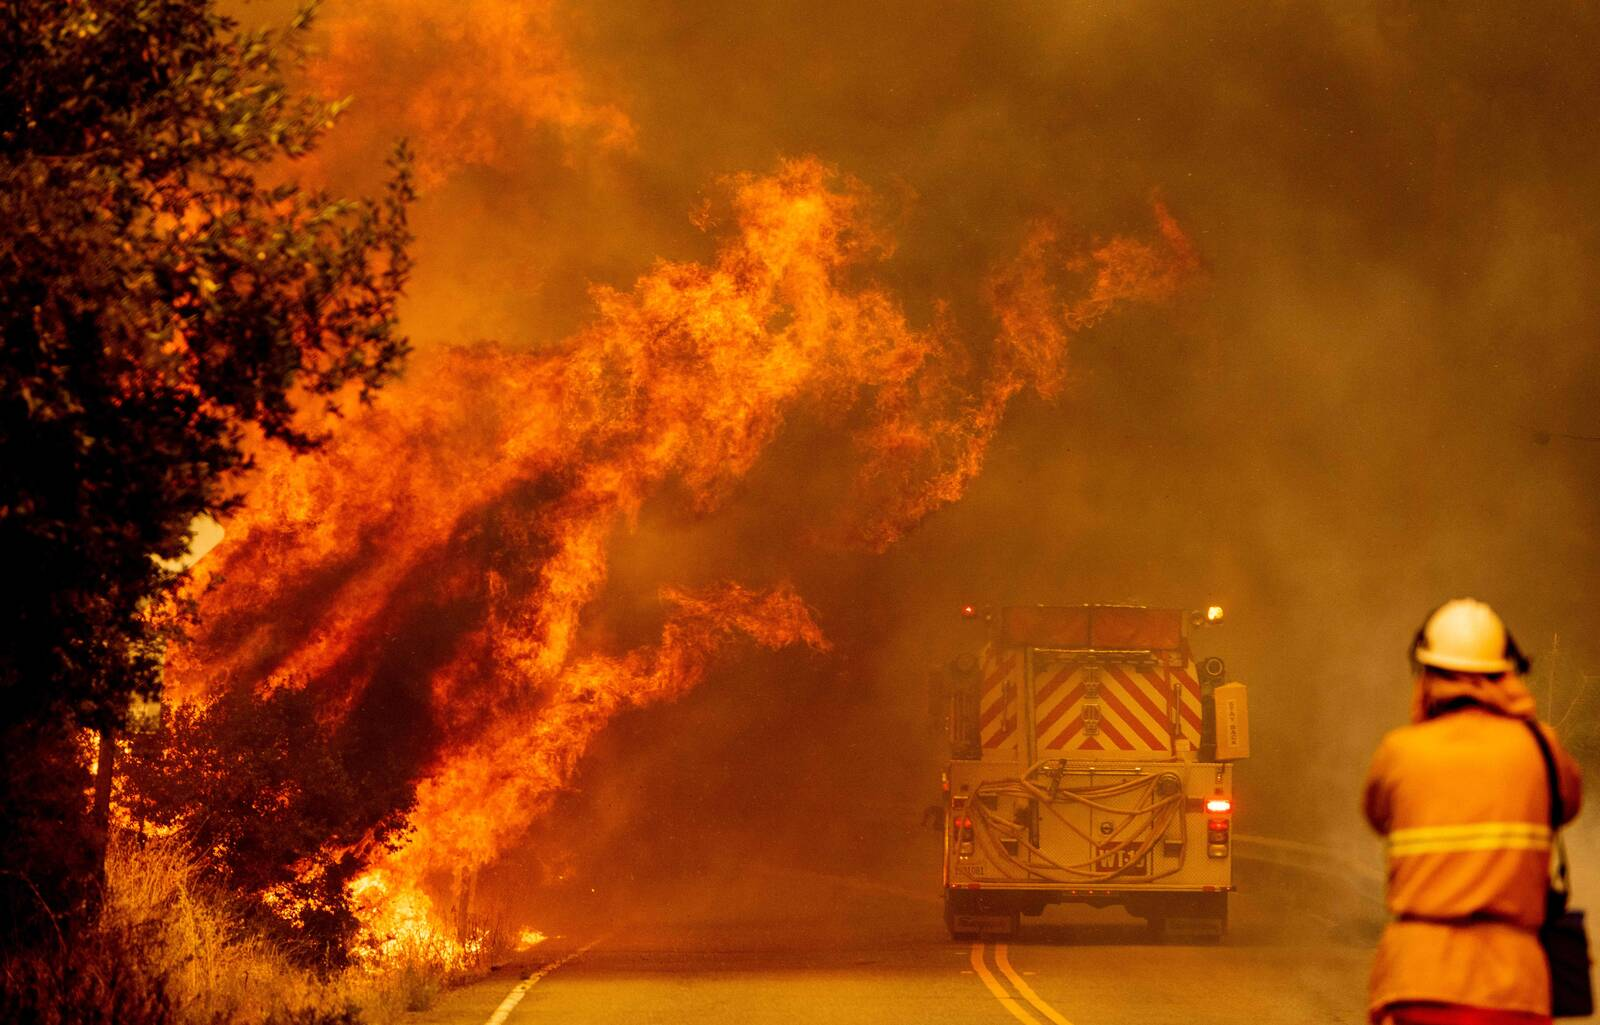 A fire truck drives through flames as the Hennessey fire continues to rage out of control near Lake Berryessa in Napa, California on August 18, 2020. Credit: JOSH EDELSON/AFP via Getty Images